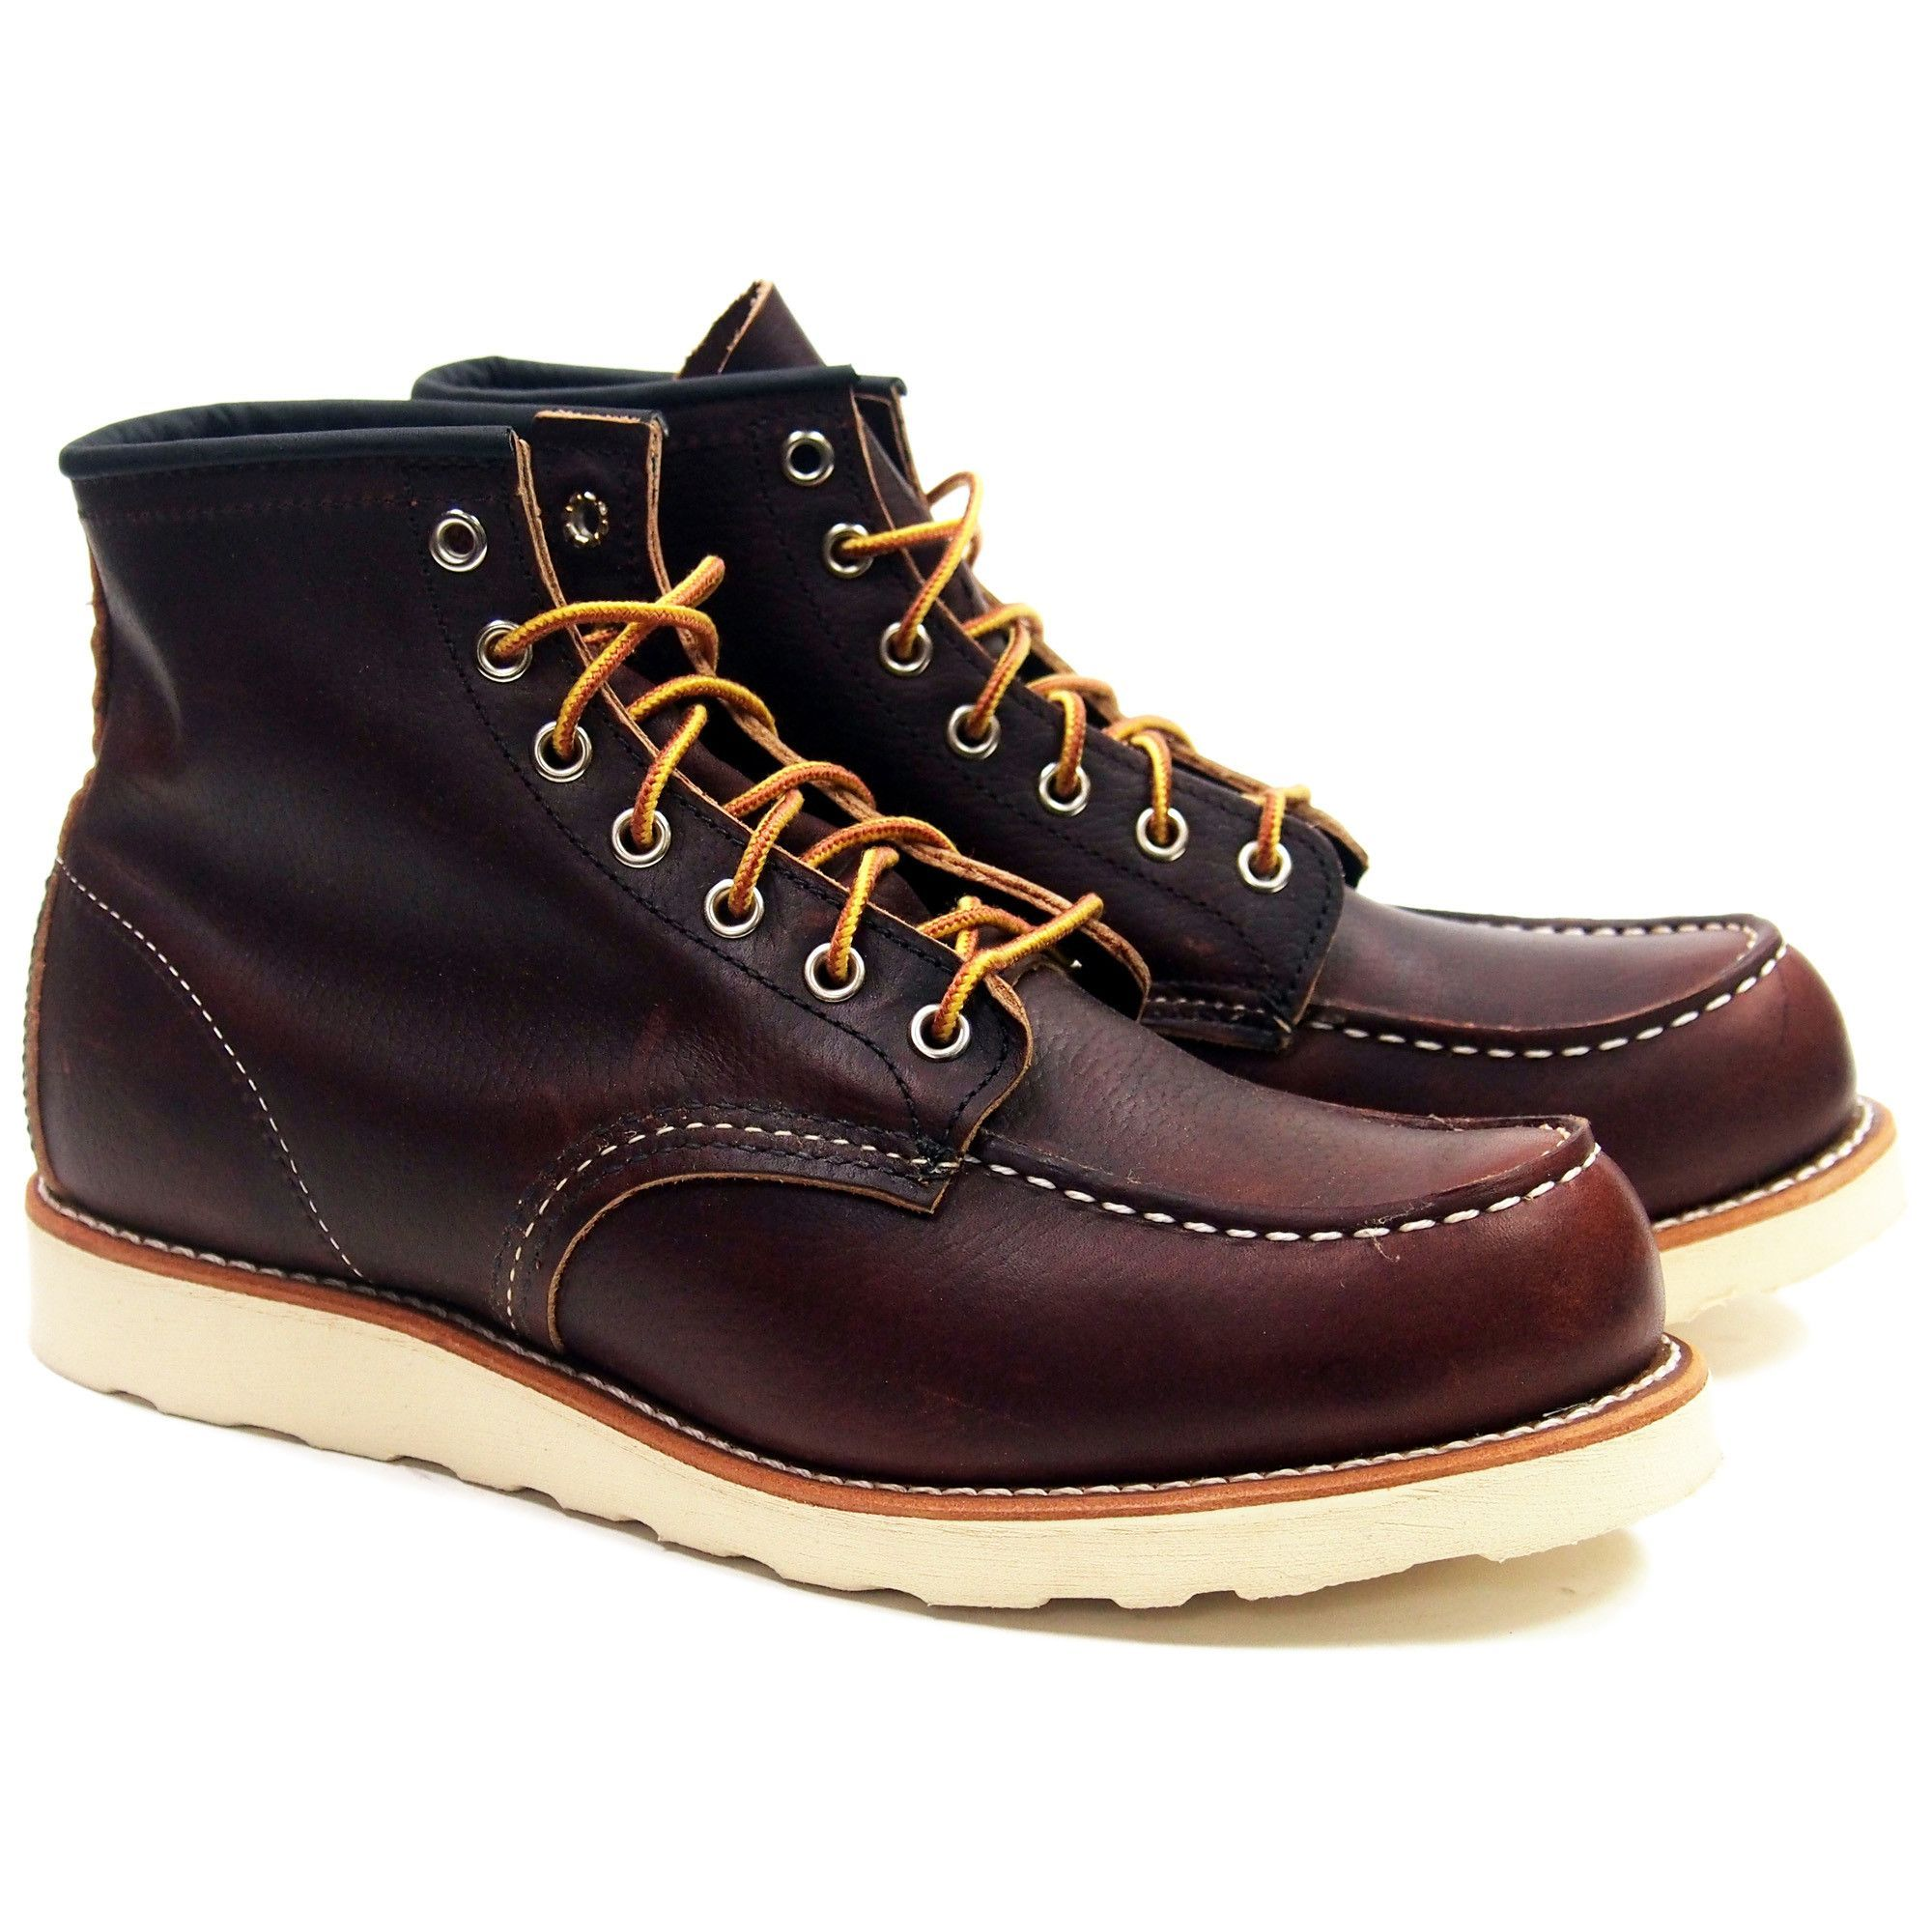 71a71730fa5 Red Wing Heritage Moc Toe Boots 8138 in 2019 | RED WING | Boots ...